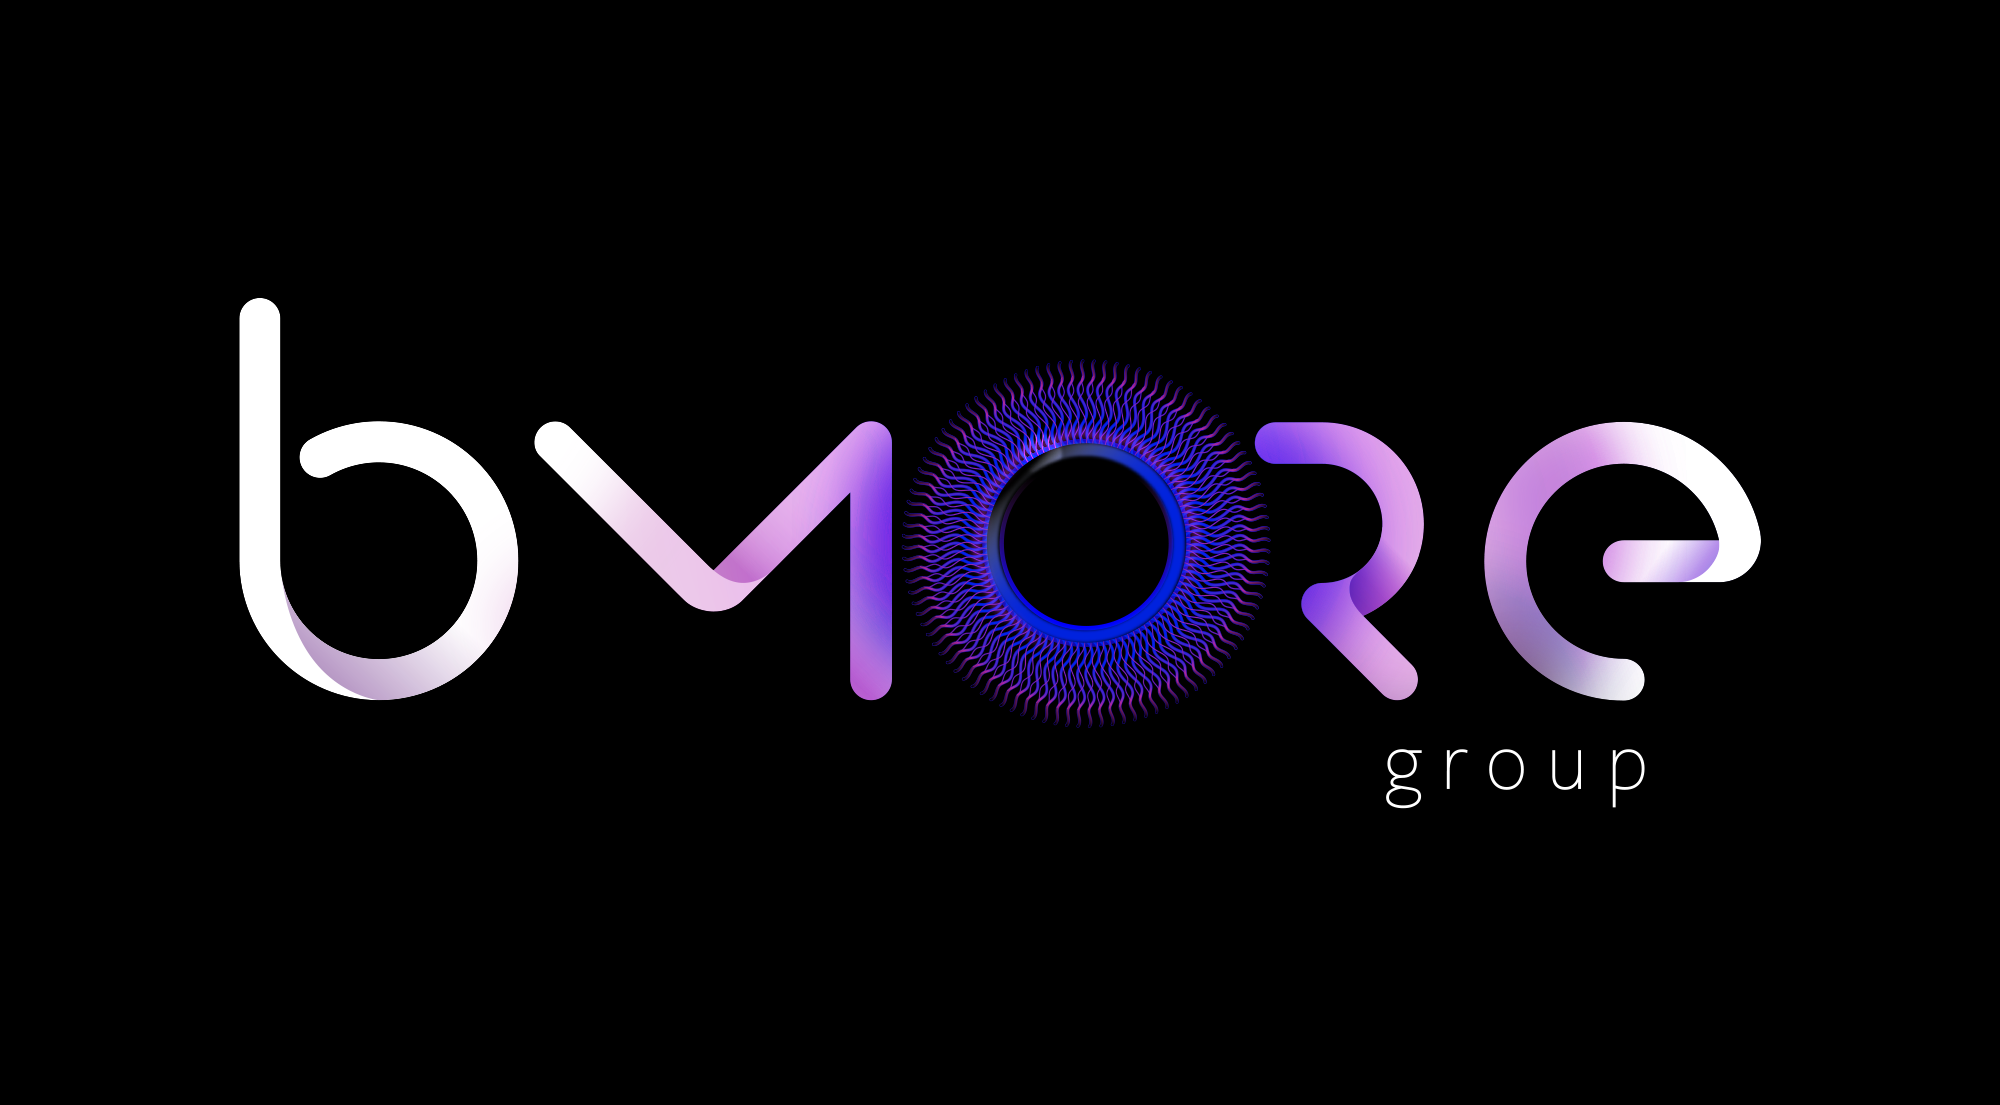 bmore group